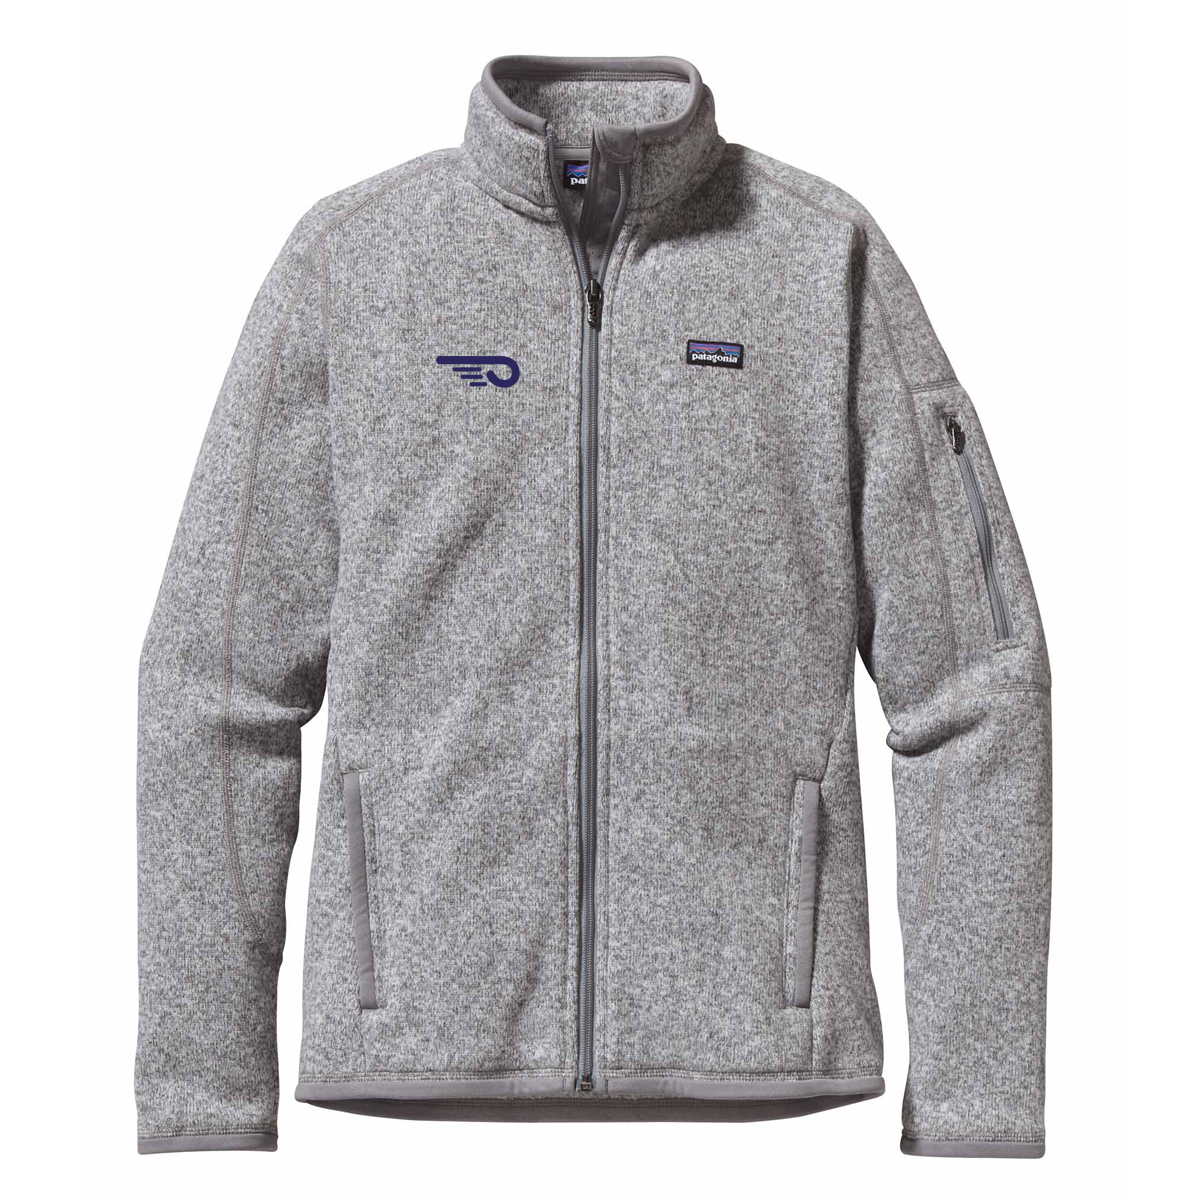 Hinckley Yachts- W's Patagonia Better Sweater Jacket